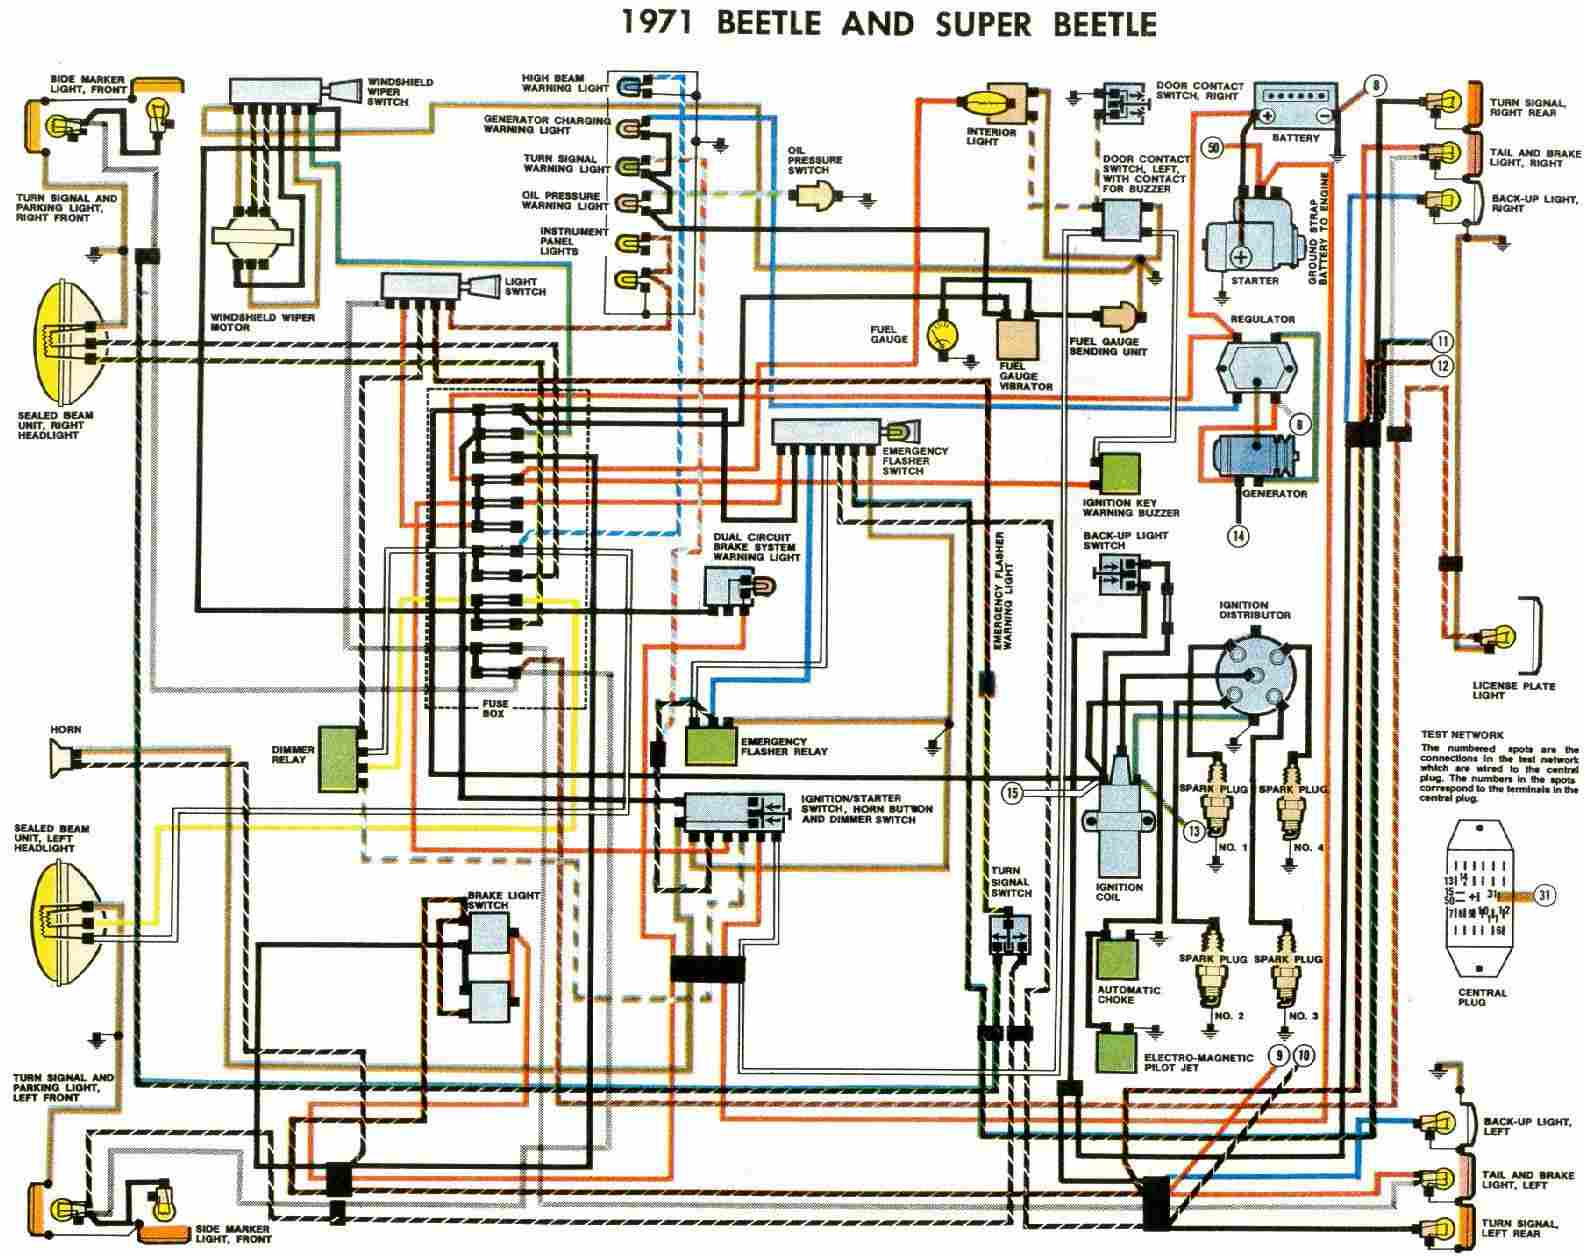 VW+Beetle+and+Super+Beetle+1971+Electrical+Wiring+Diagram 28 [ 1971 vw bus wiring diagram ] 1971 vw bus turn signal 74 VW Beetle Wiring Diagram at crackthecode.co